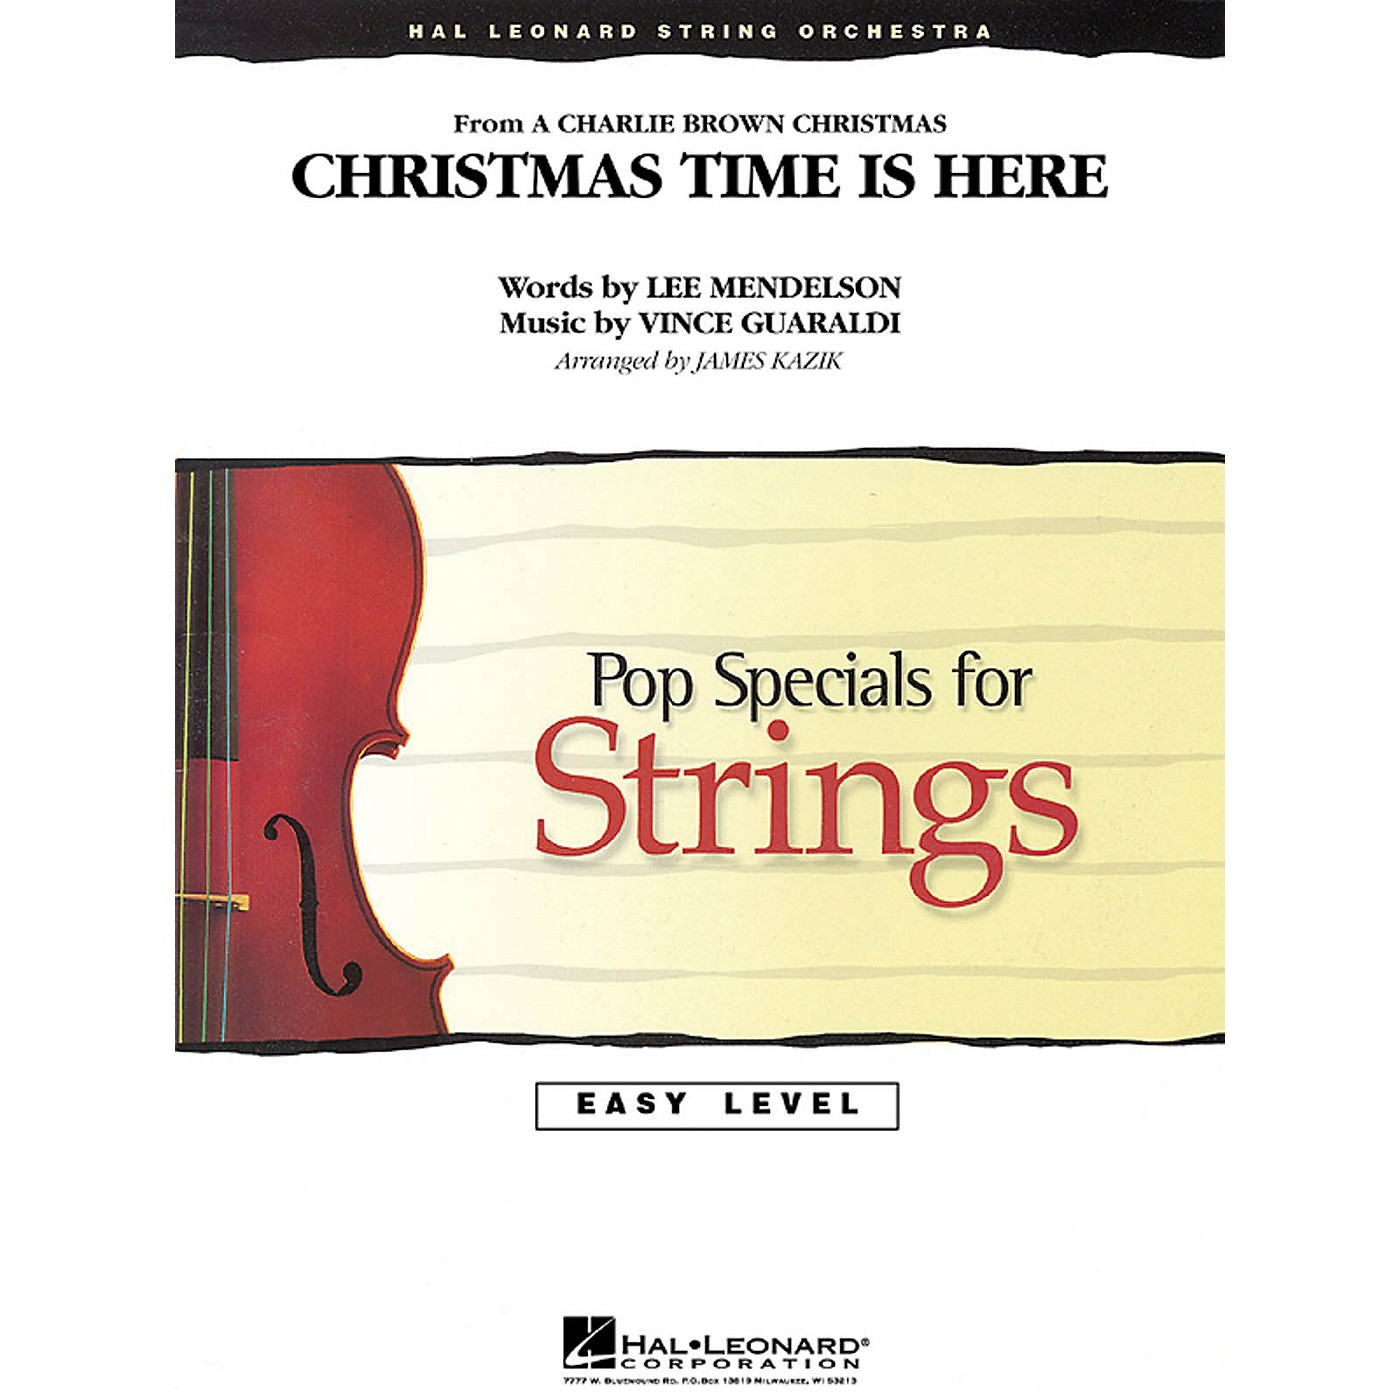 Hal Leonard Christmas Time Is Here Easy Pop Specials For Strings Series Arranged by James Kazik thumbnail